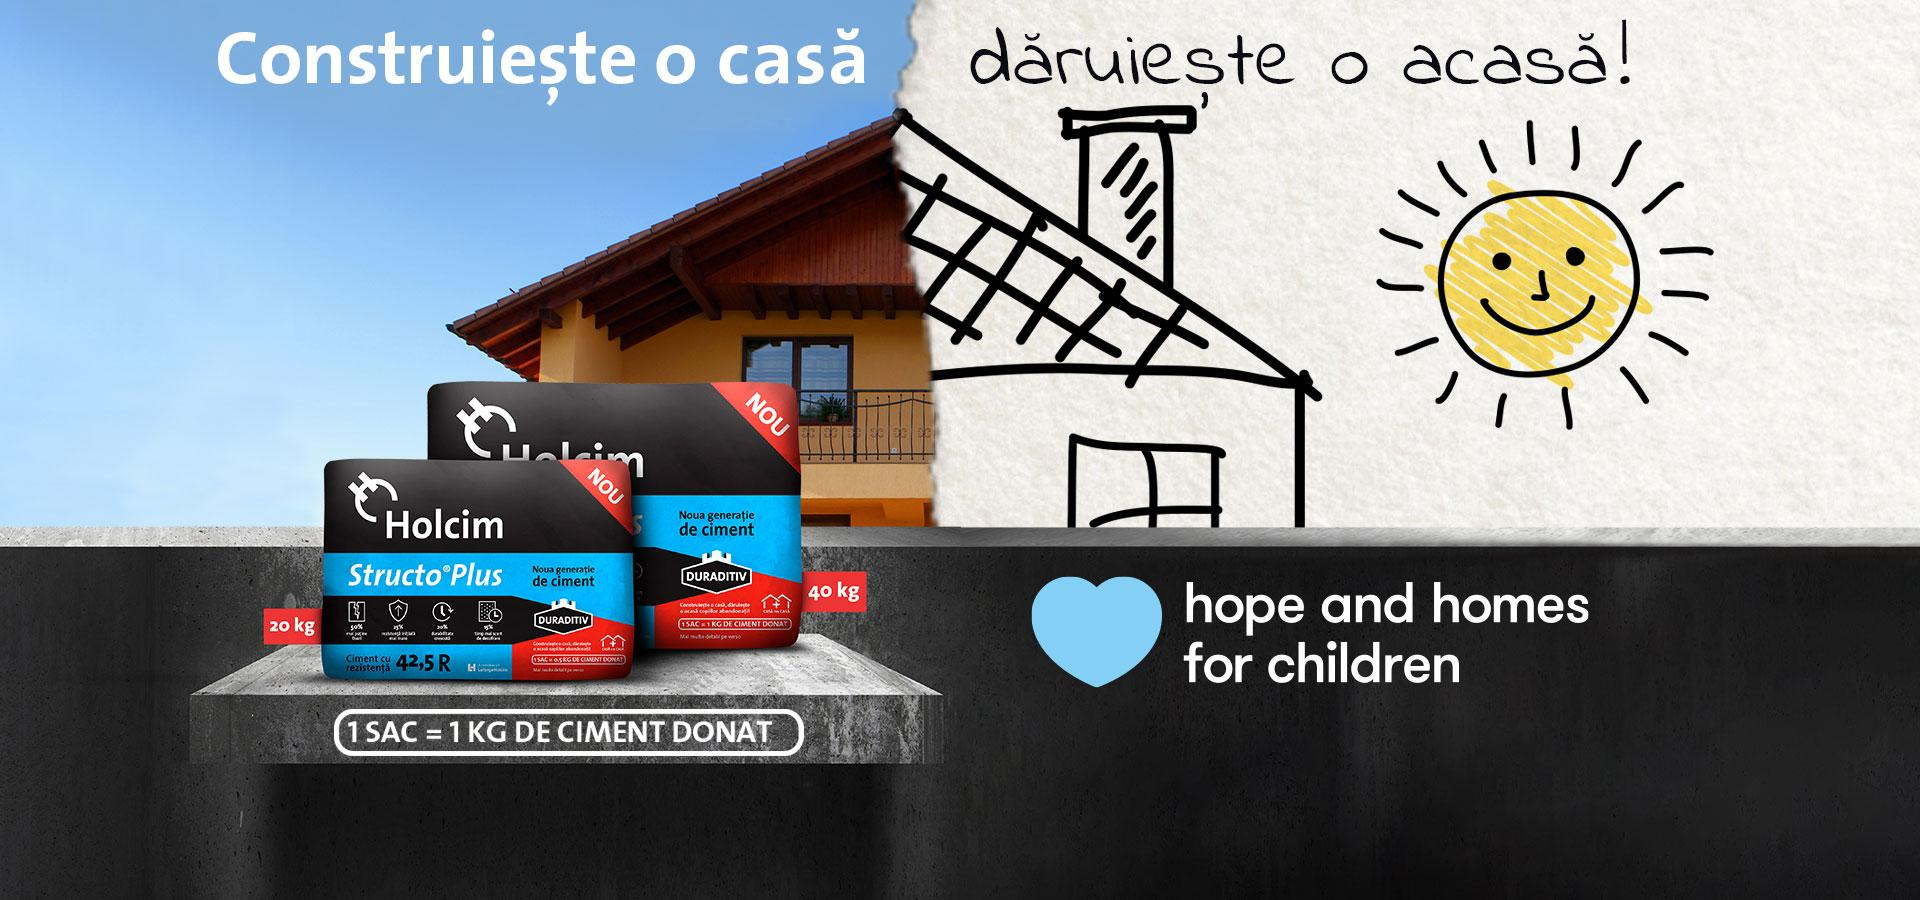 Case pentru copiii instituționalizați, construite în Neamț de Hope and Homes for Children și Holcim